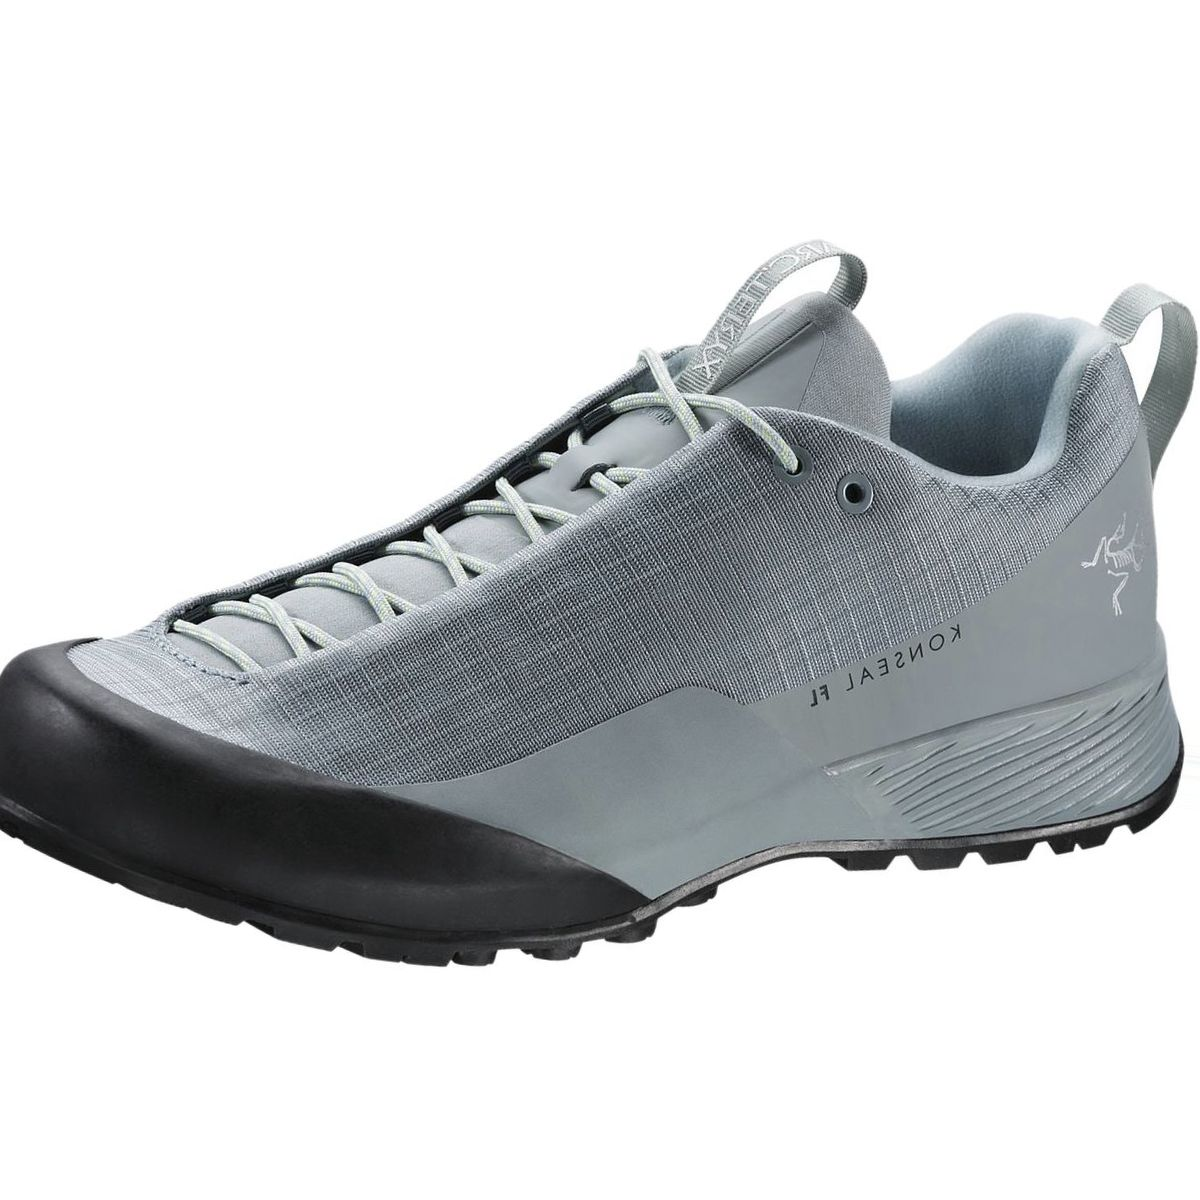 Arc'teryx Konseal FL Approach Shoe - Women's